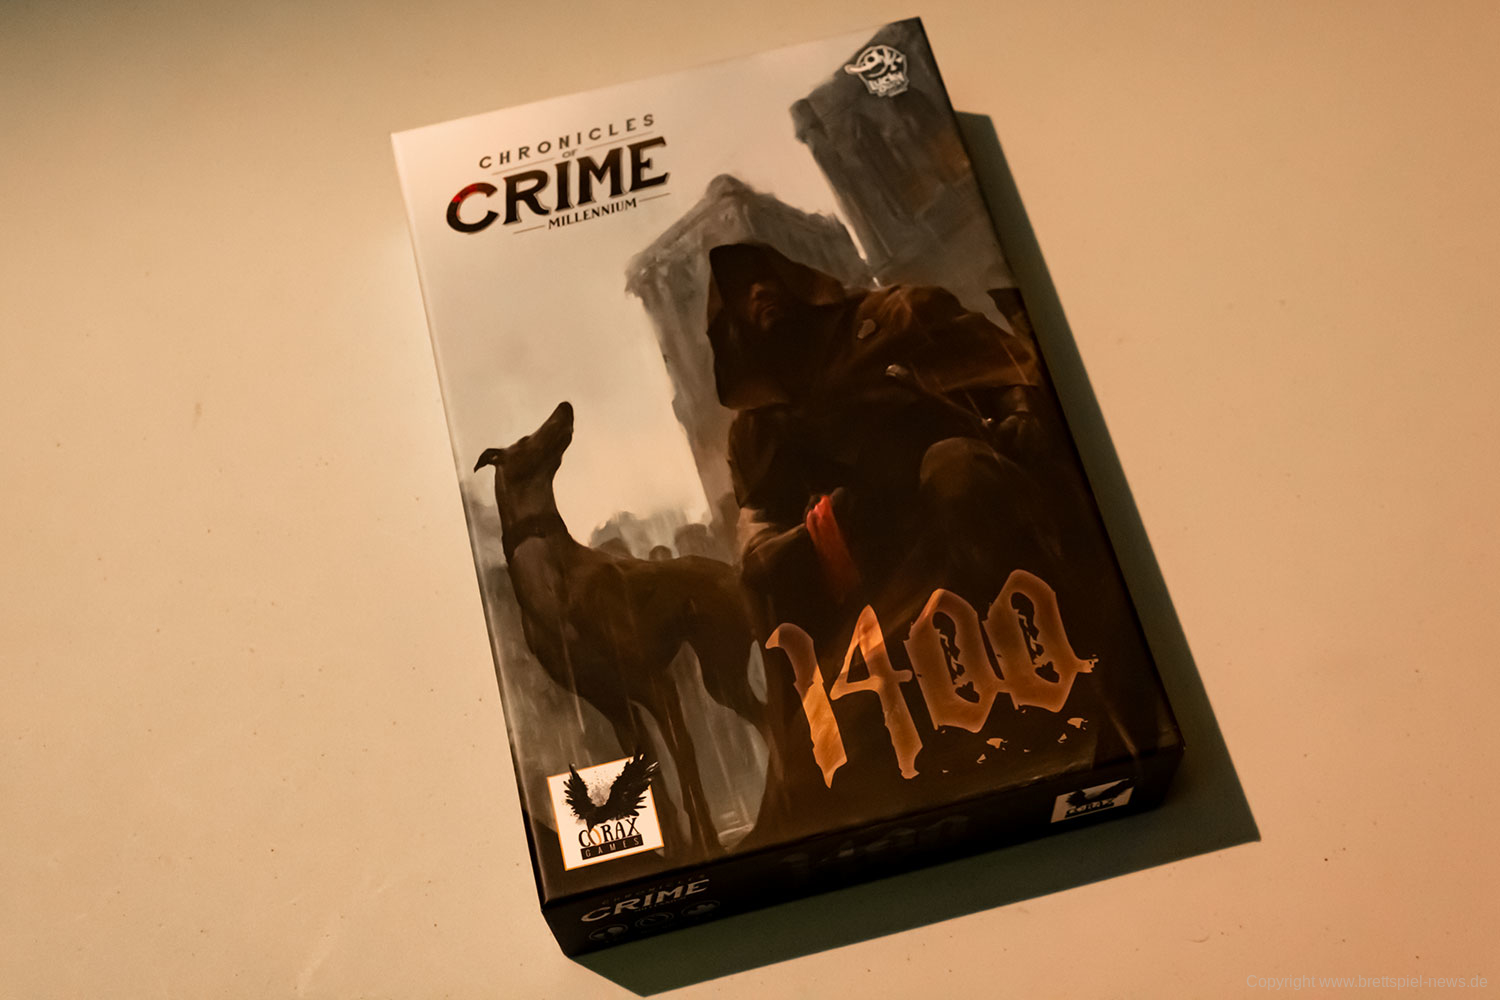 CHRONICLES OF CRIME: 1400 // Bilder vom Spielmaterial